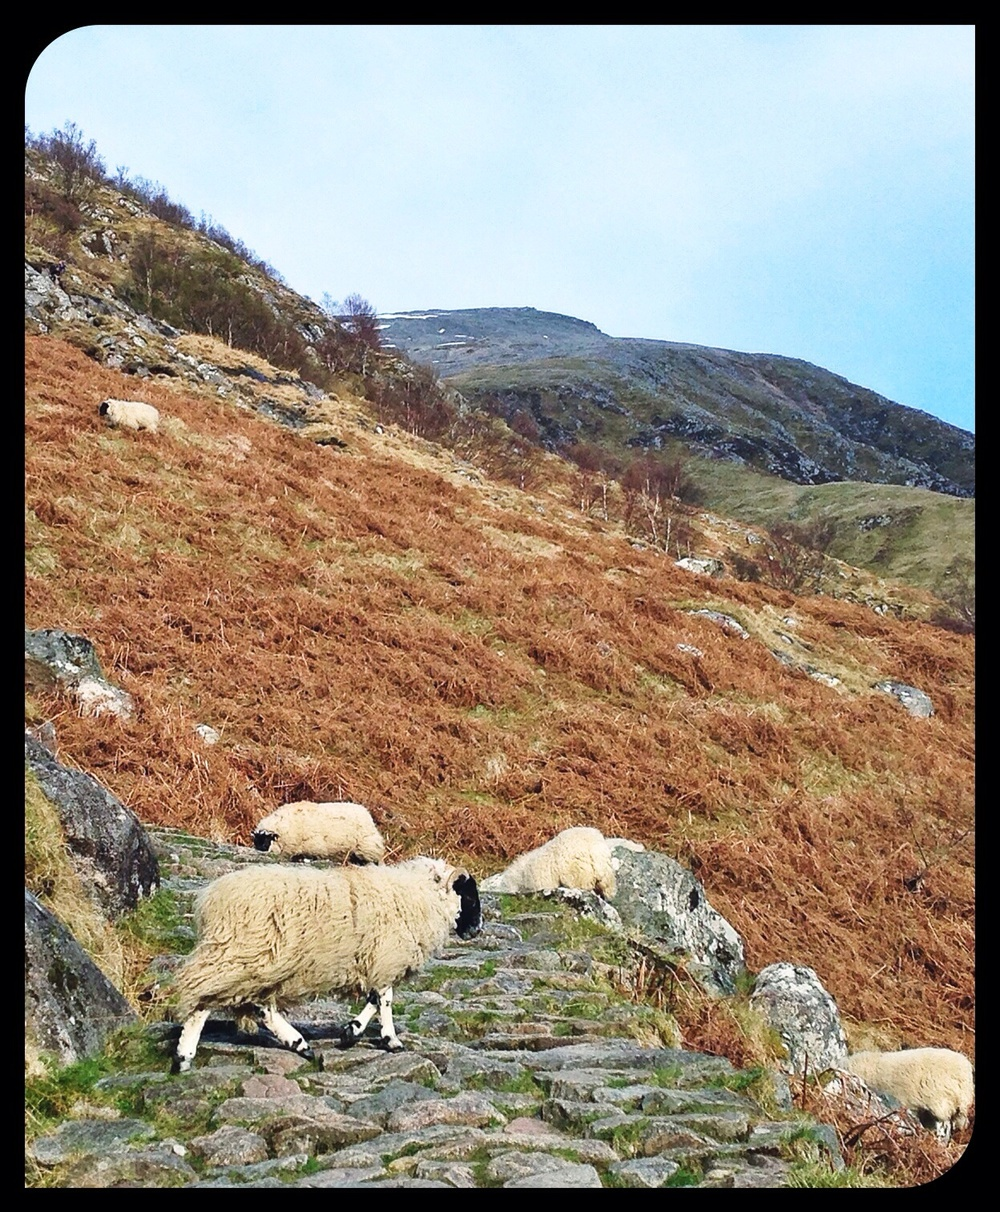 Rush hour on the Ben Nevis trail